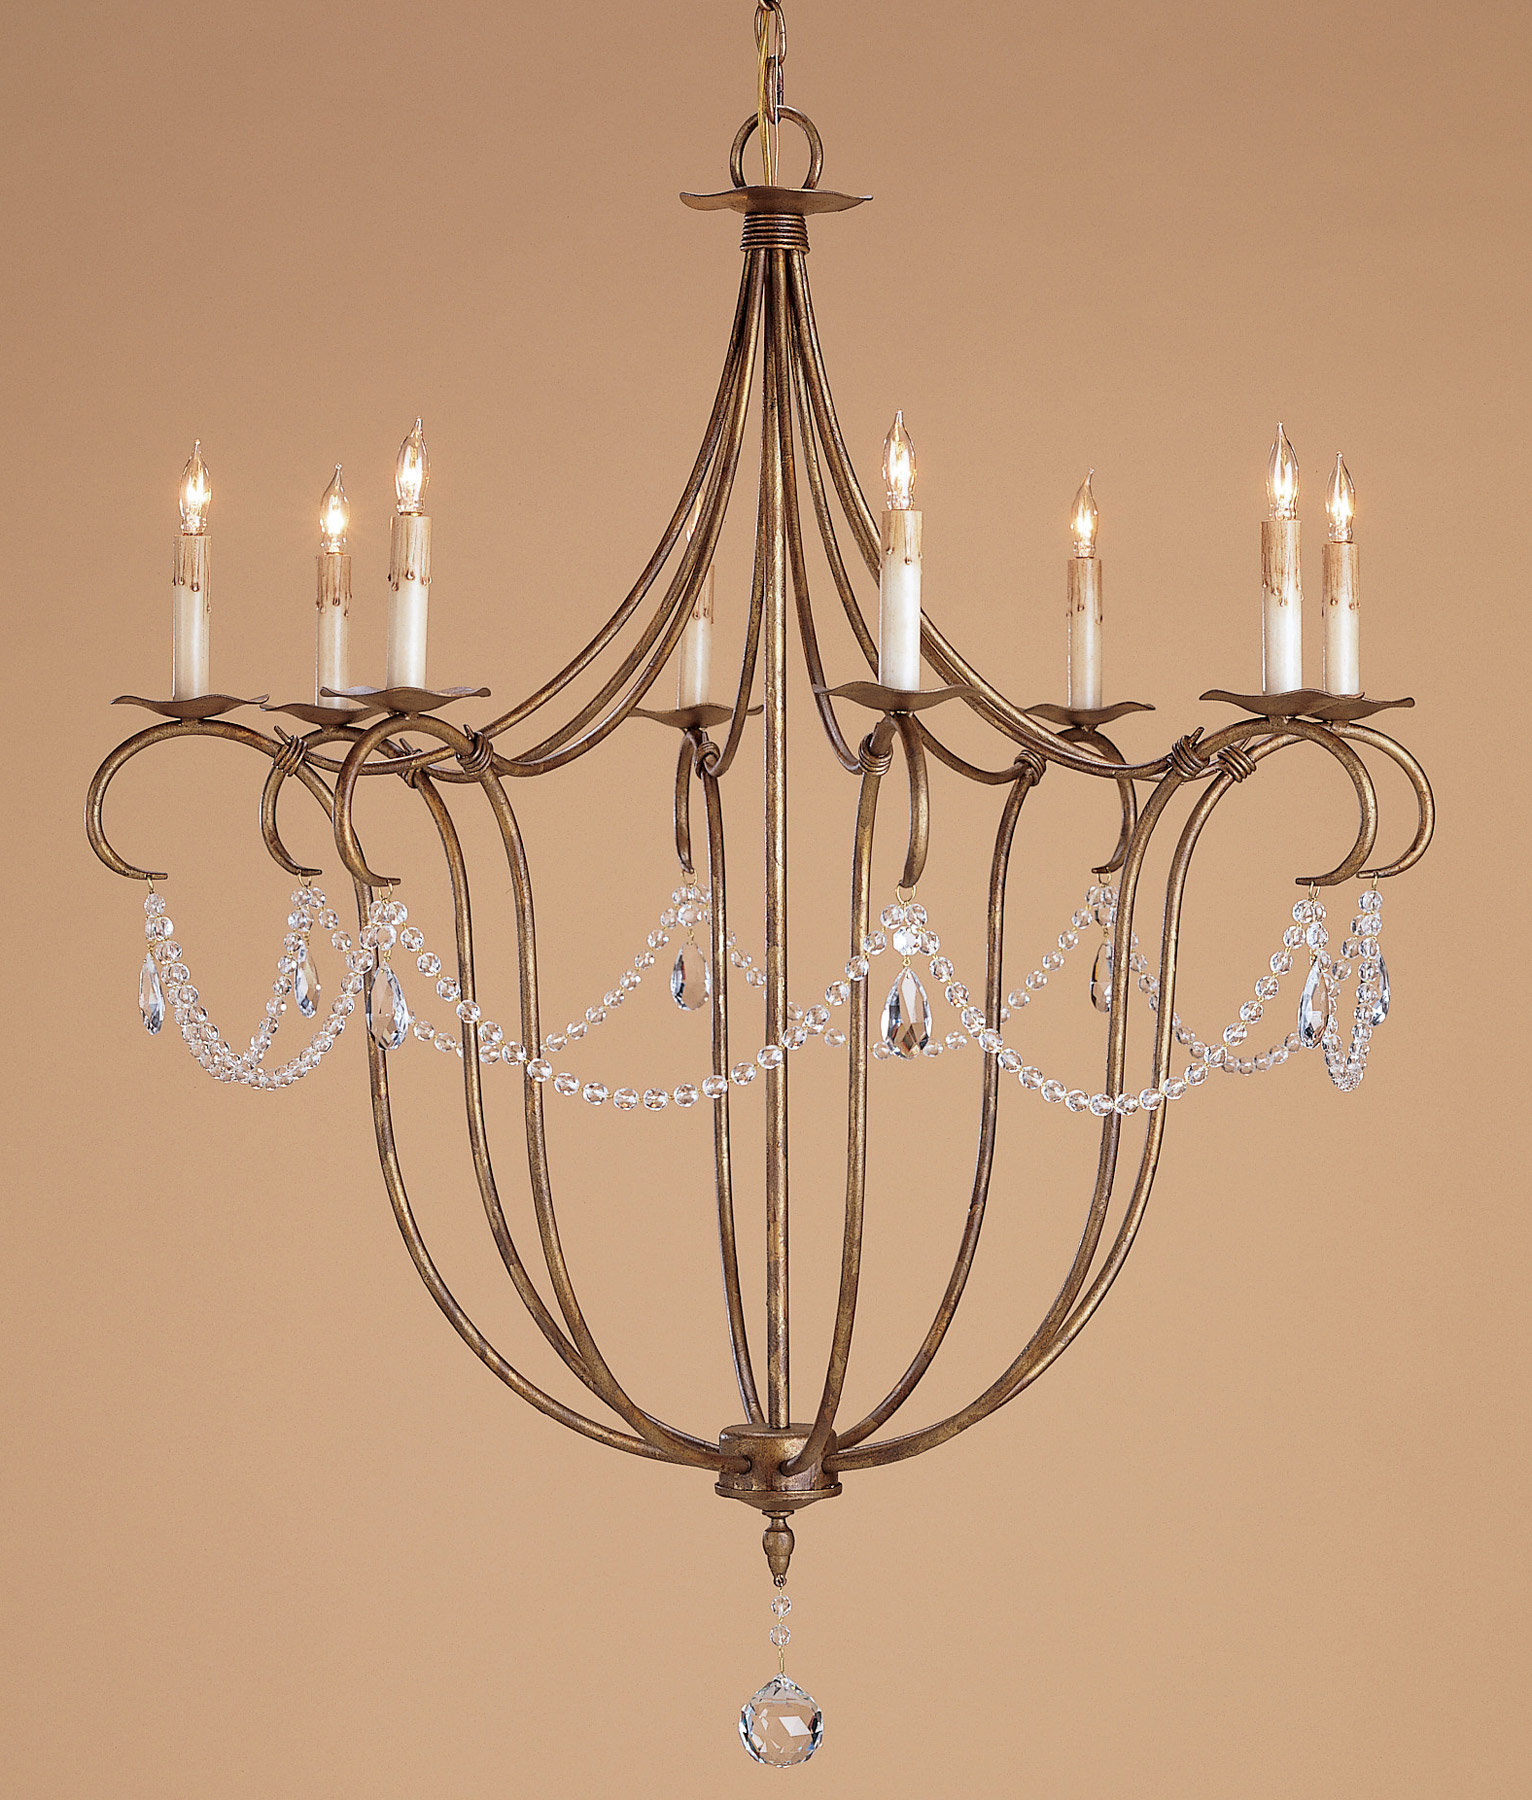 and pany 9881 Crystal Lights Eight Light Chandelier